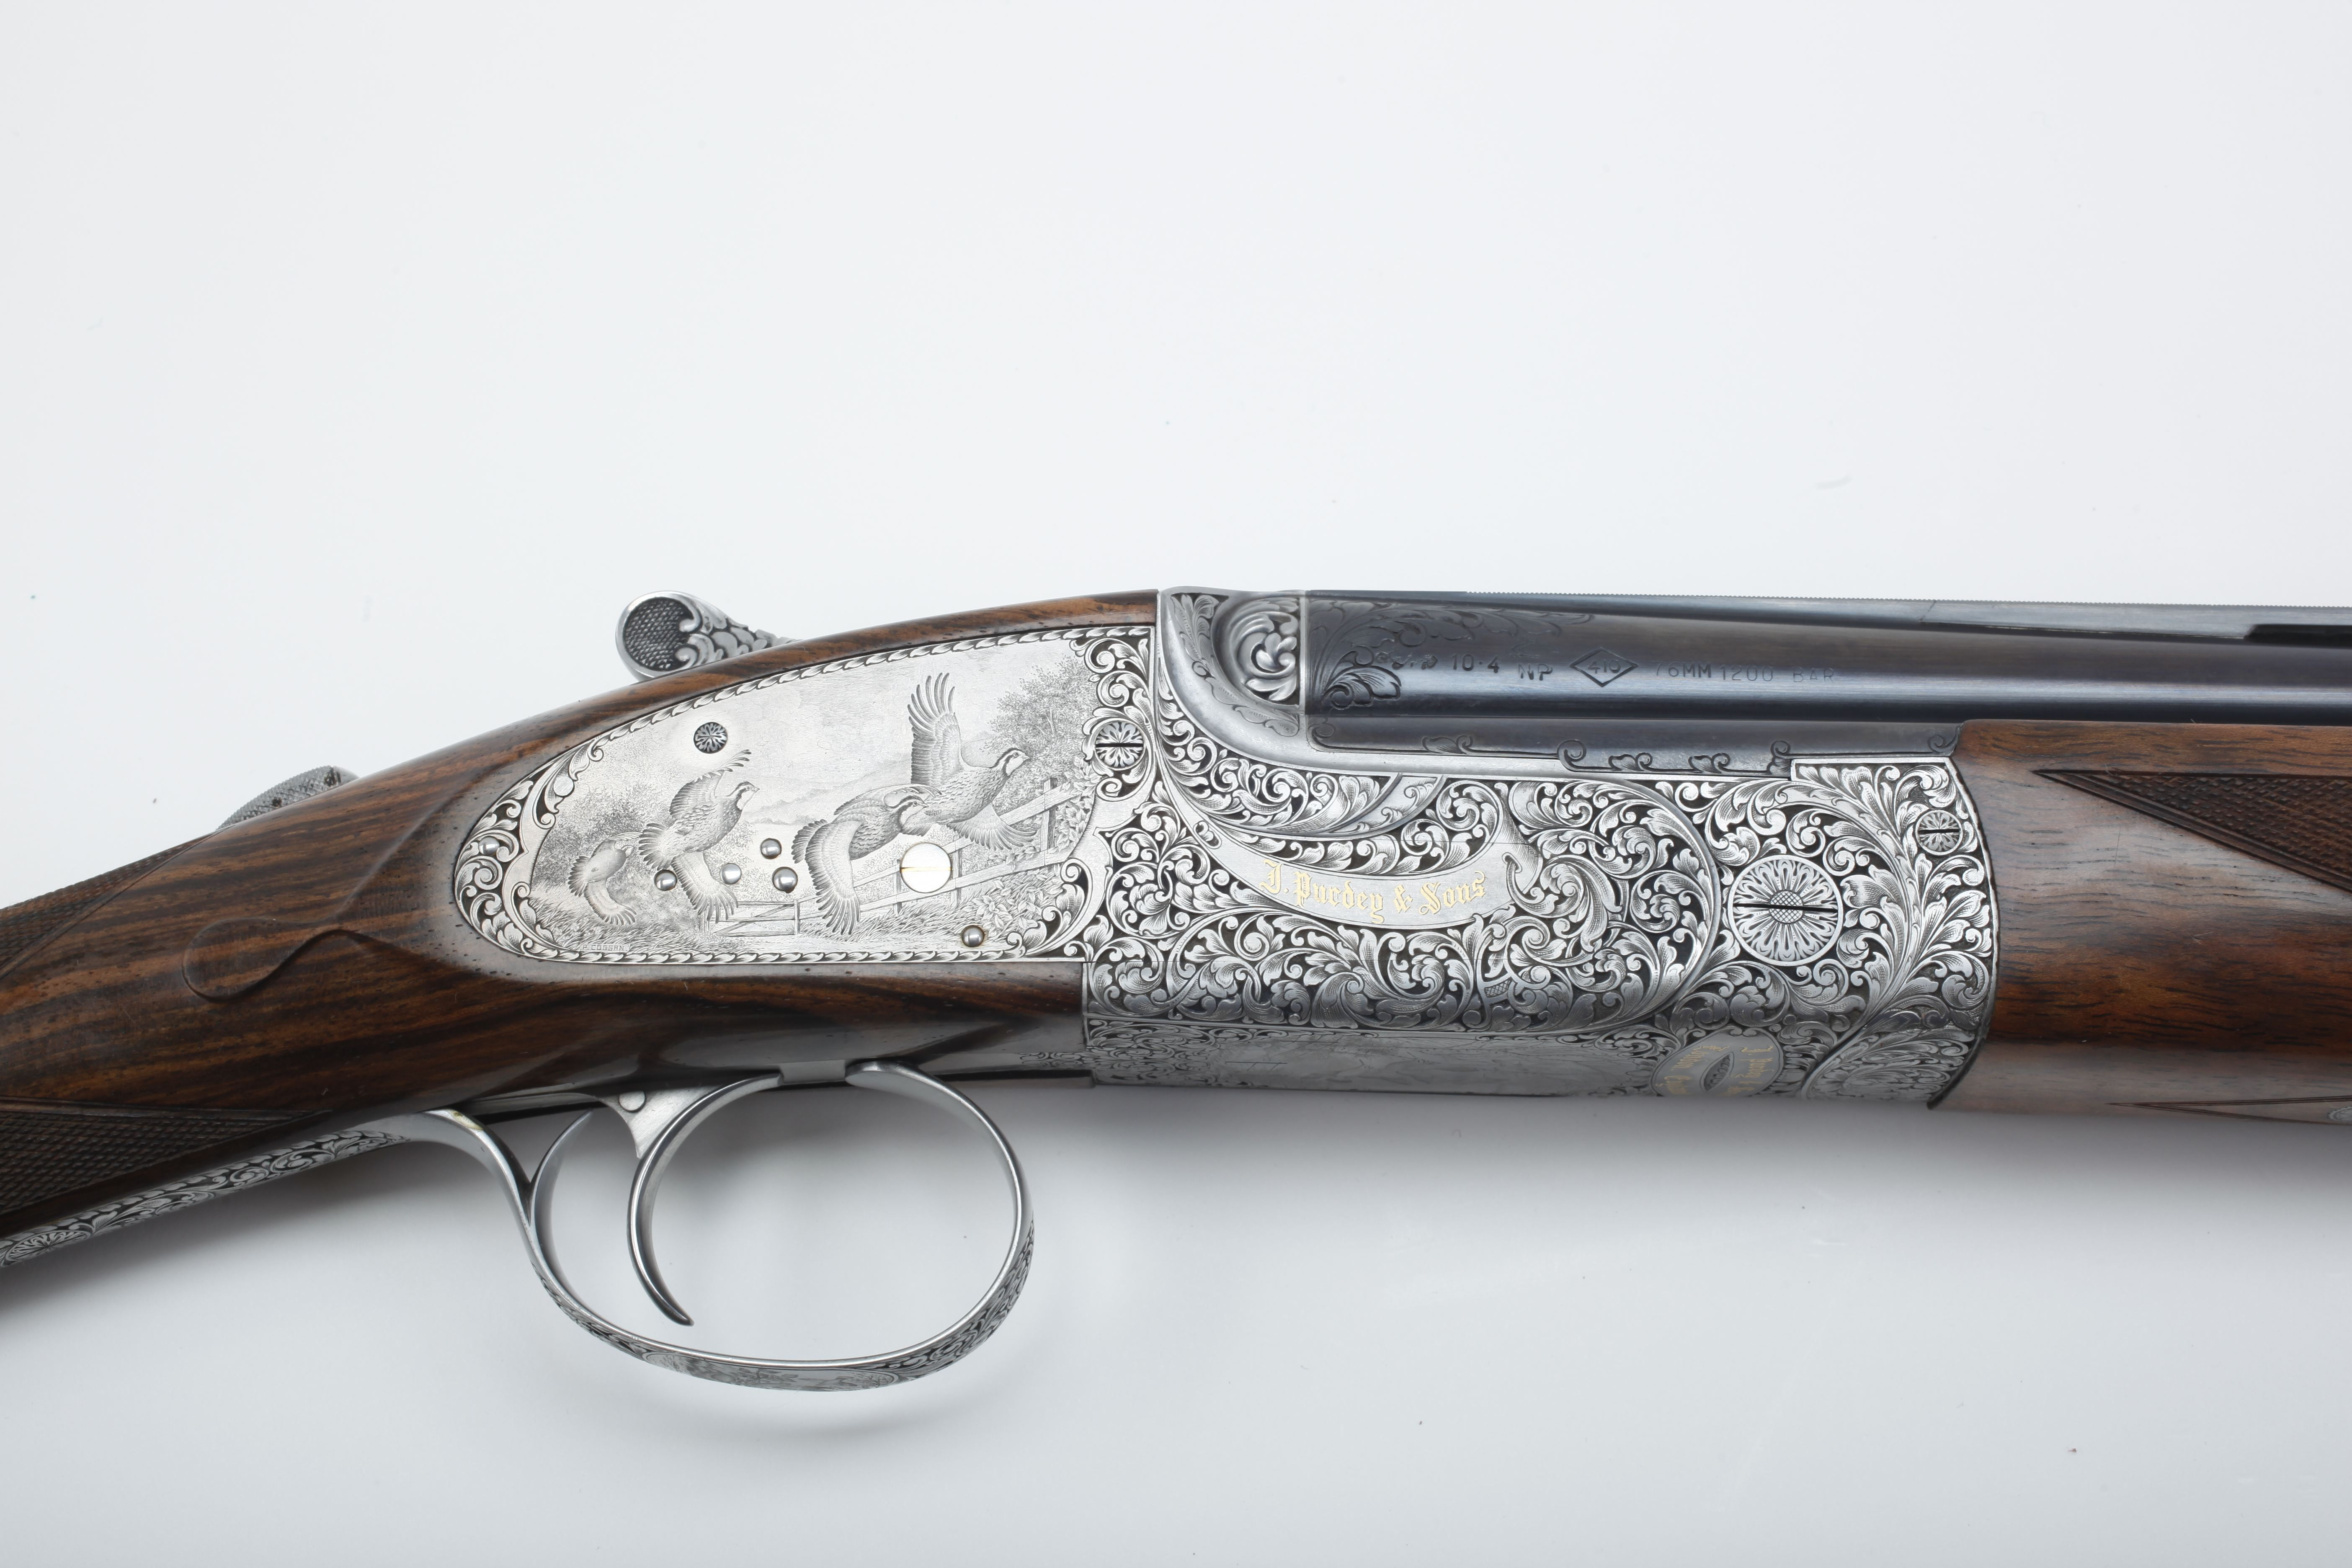 Purdy Over-Under Shotgun - .410 ga.